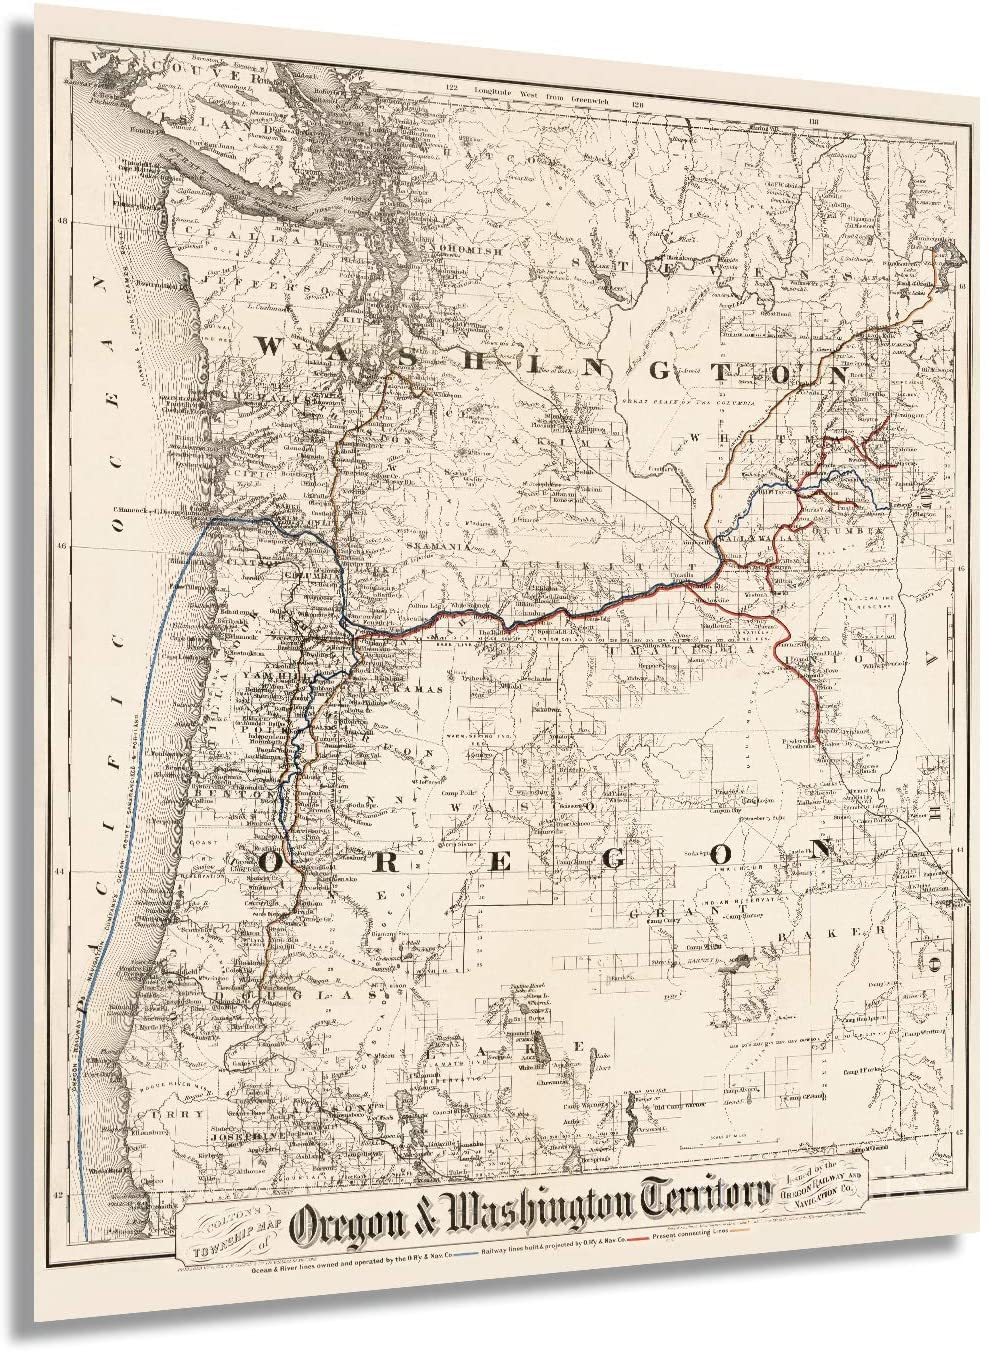 1880 Colton's township map of Oregon & Washington Territory